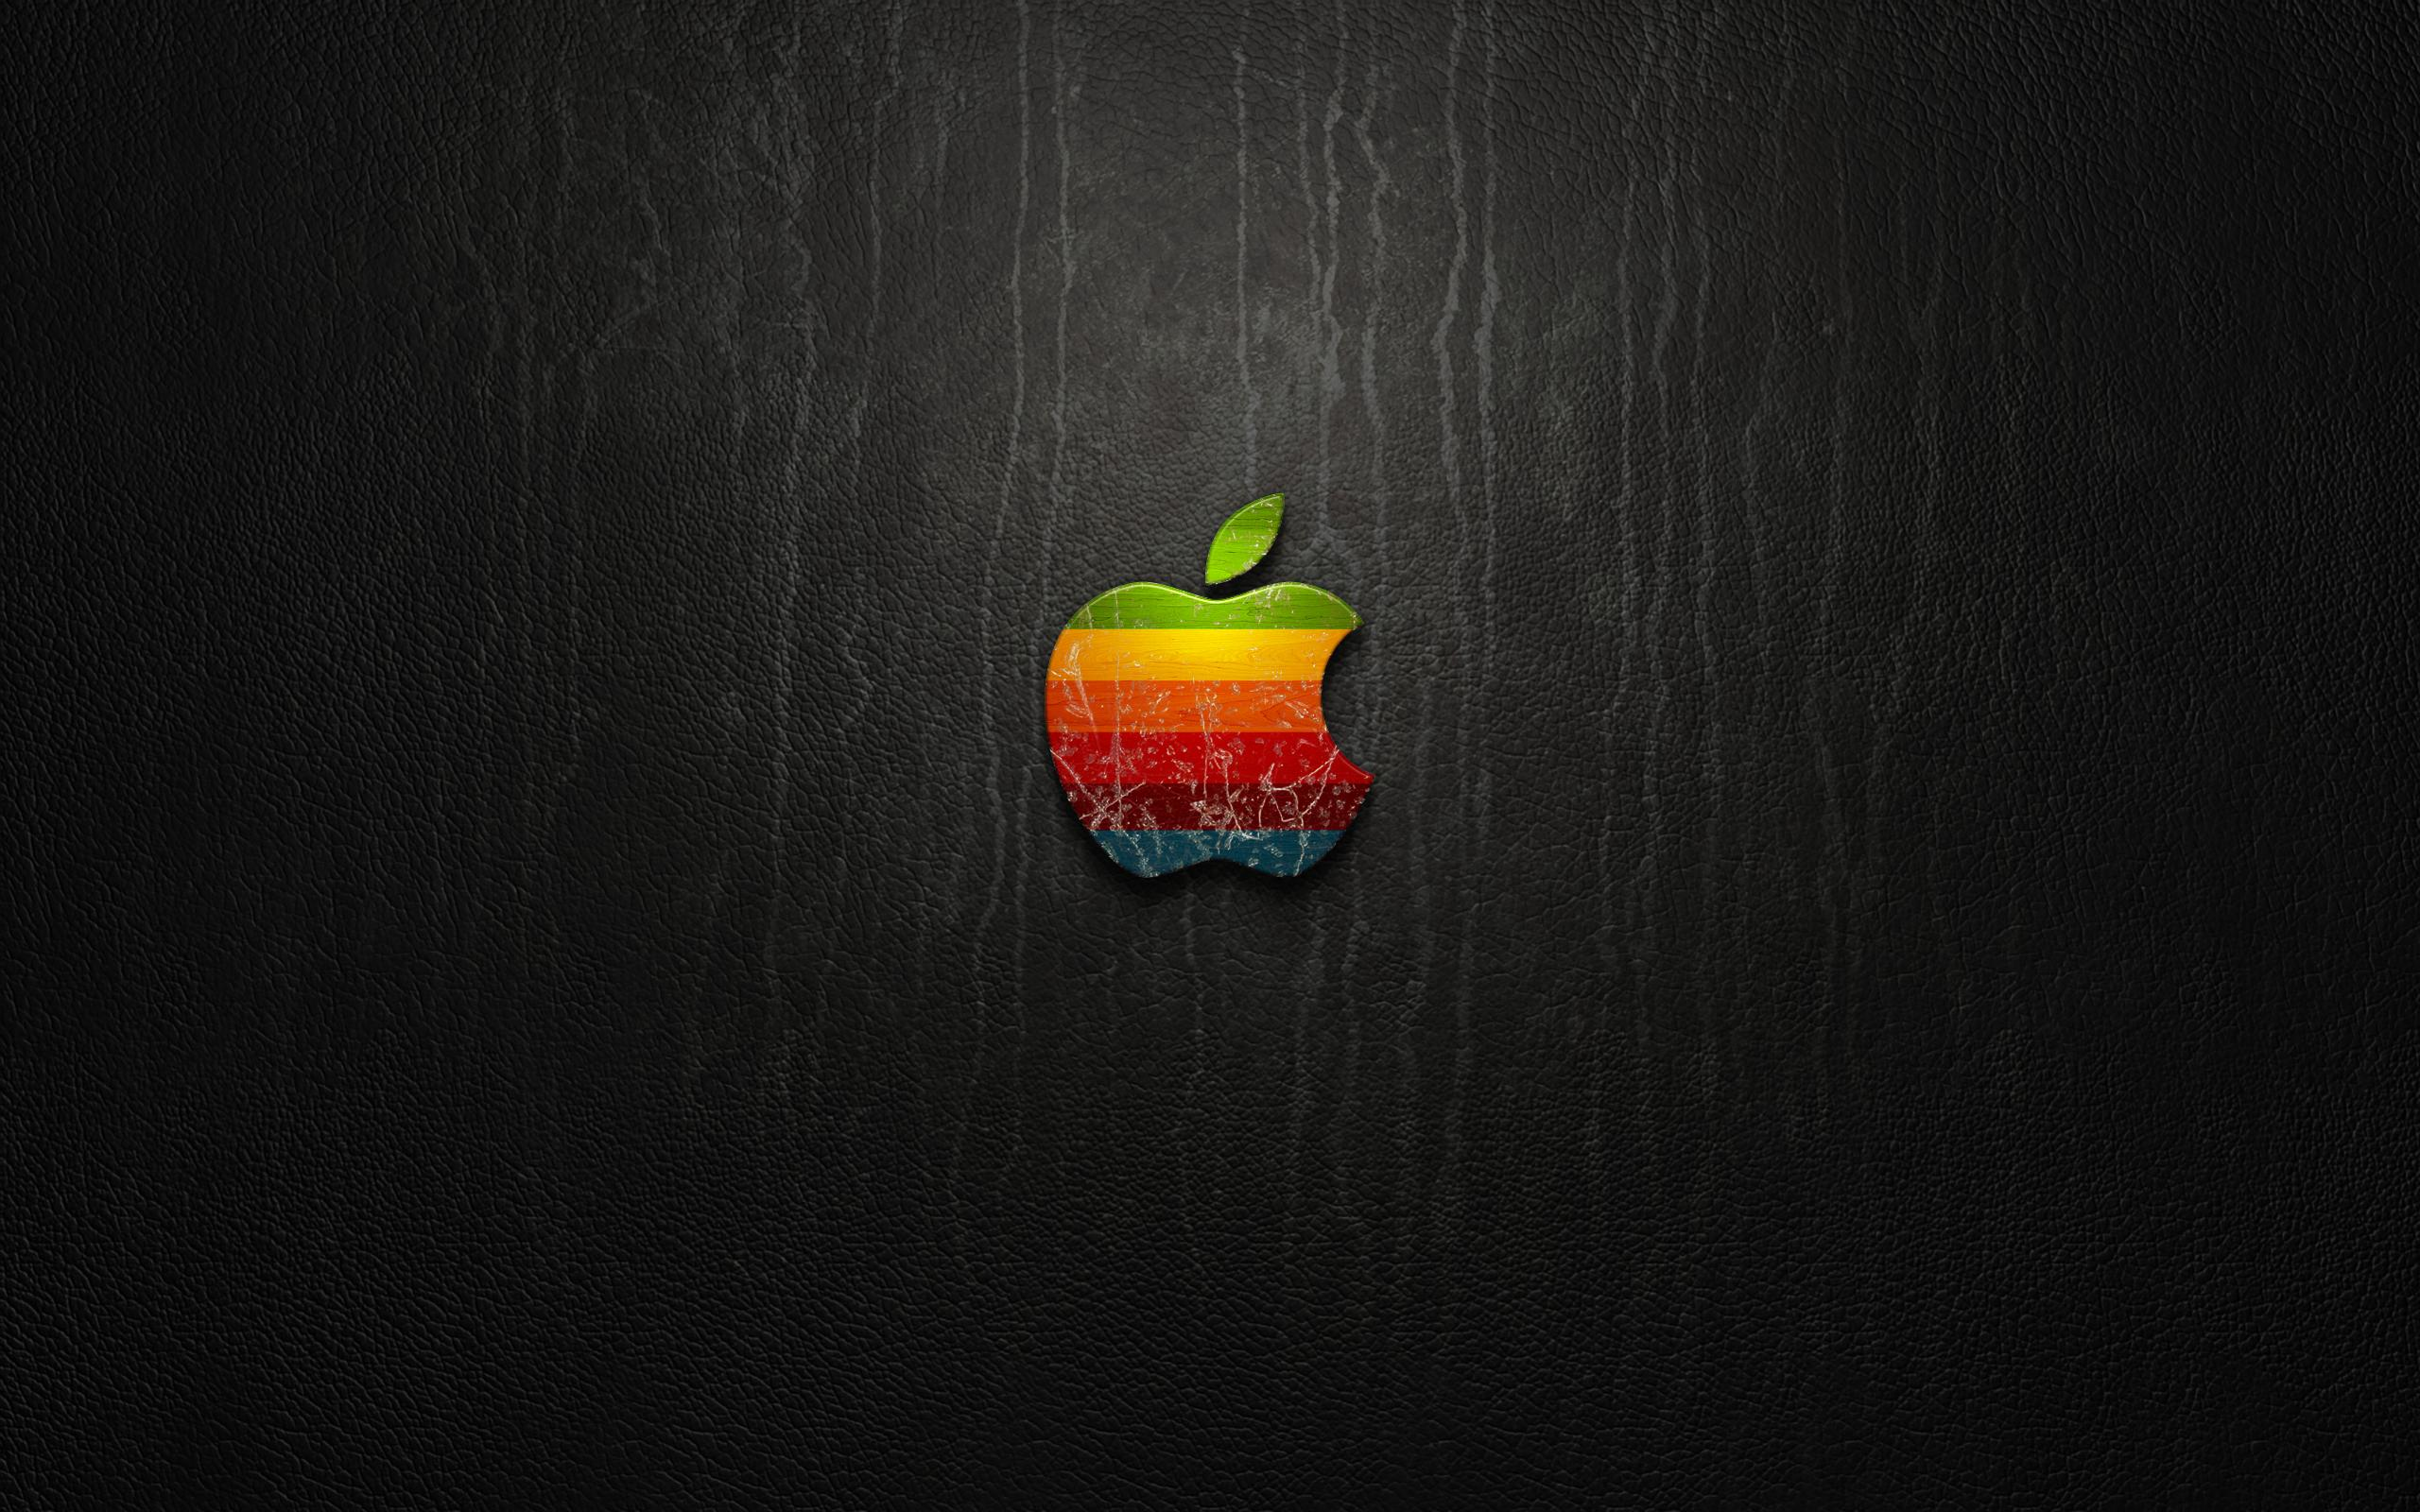 apple logo leather wallpaper [2560x1600]